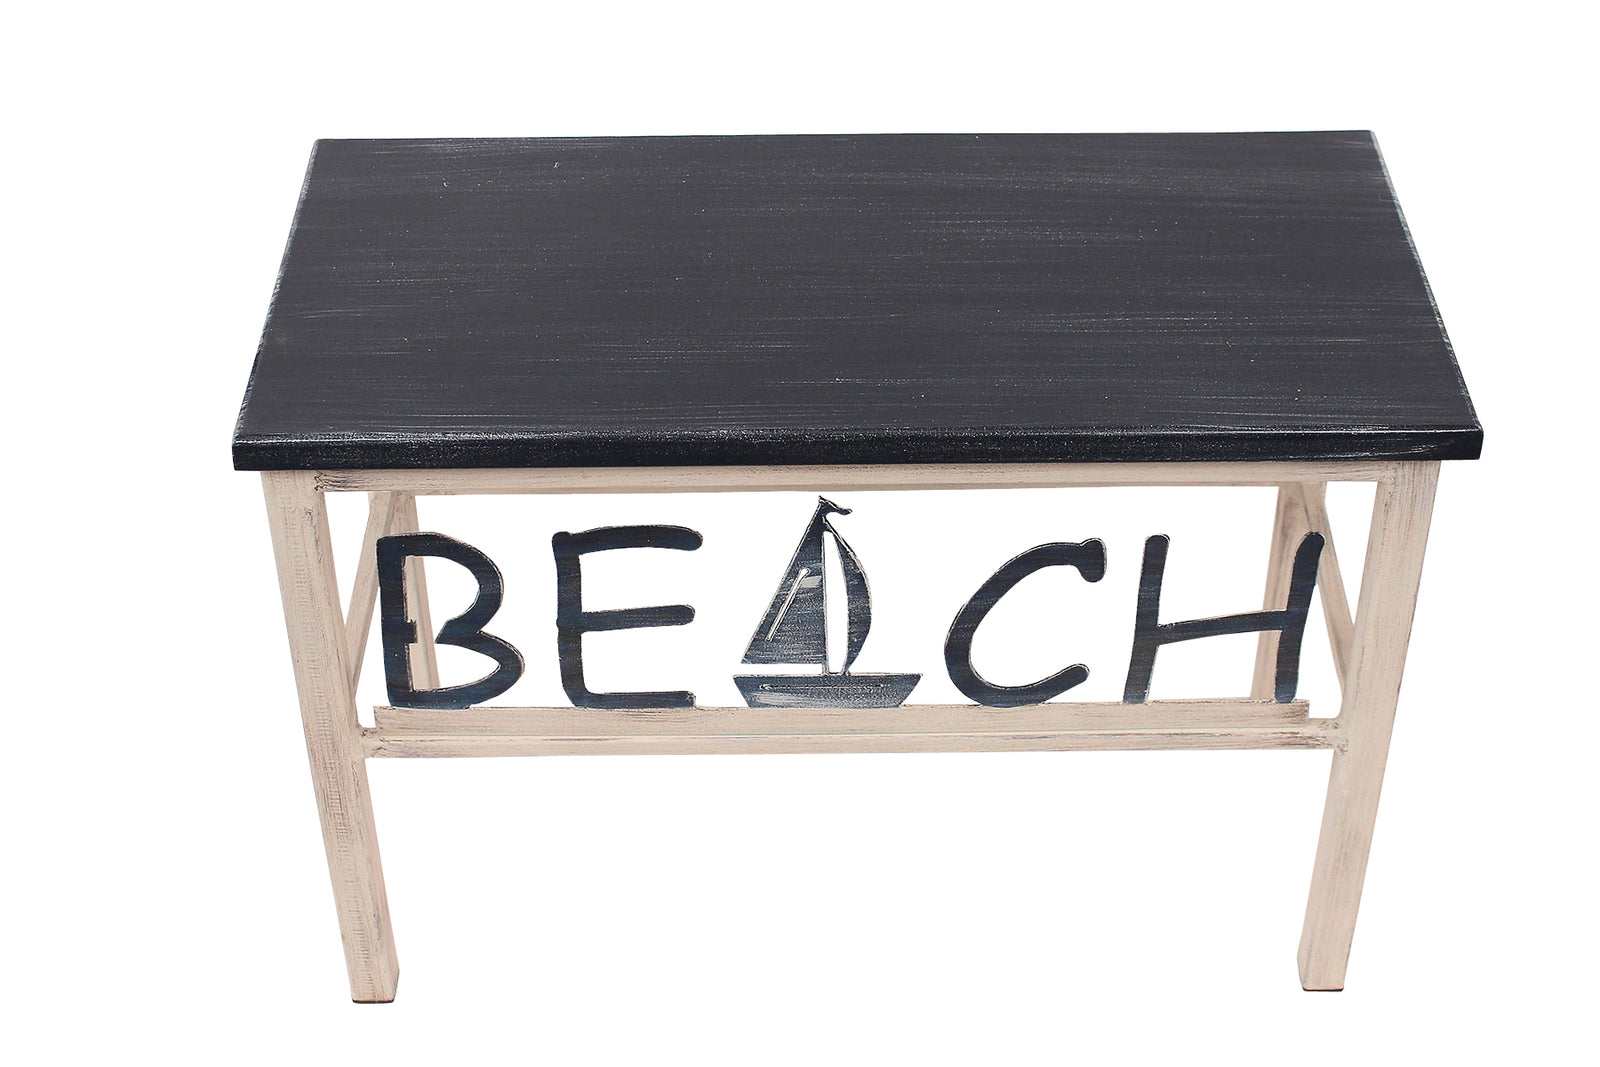 Cottage/Navy Beach Bench w/ Sailboat Accent - Coast Lamp Shop